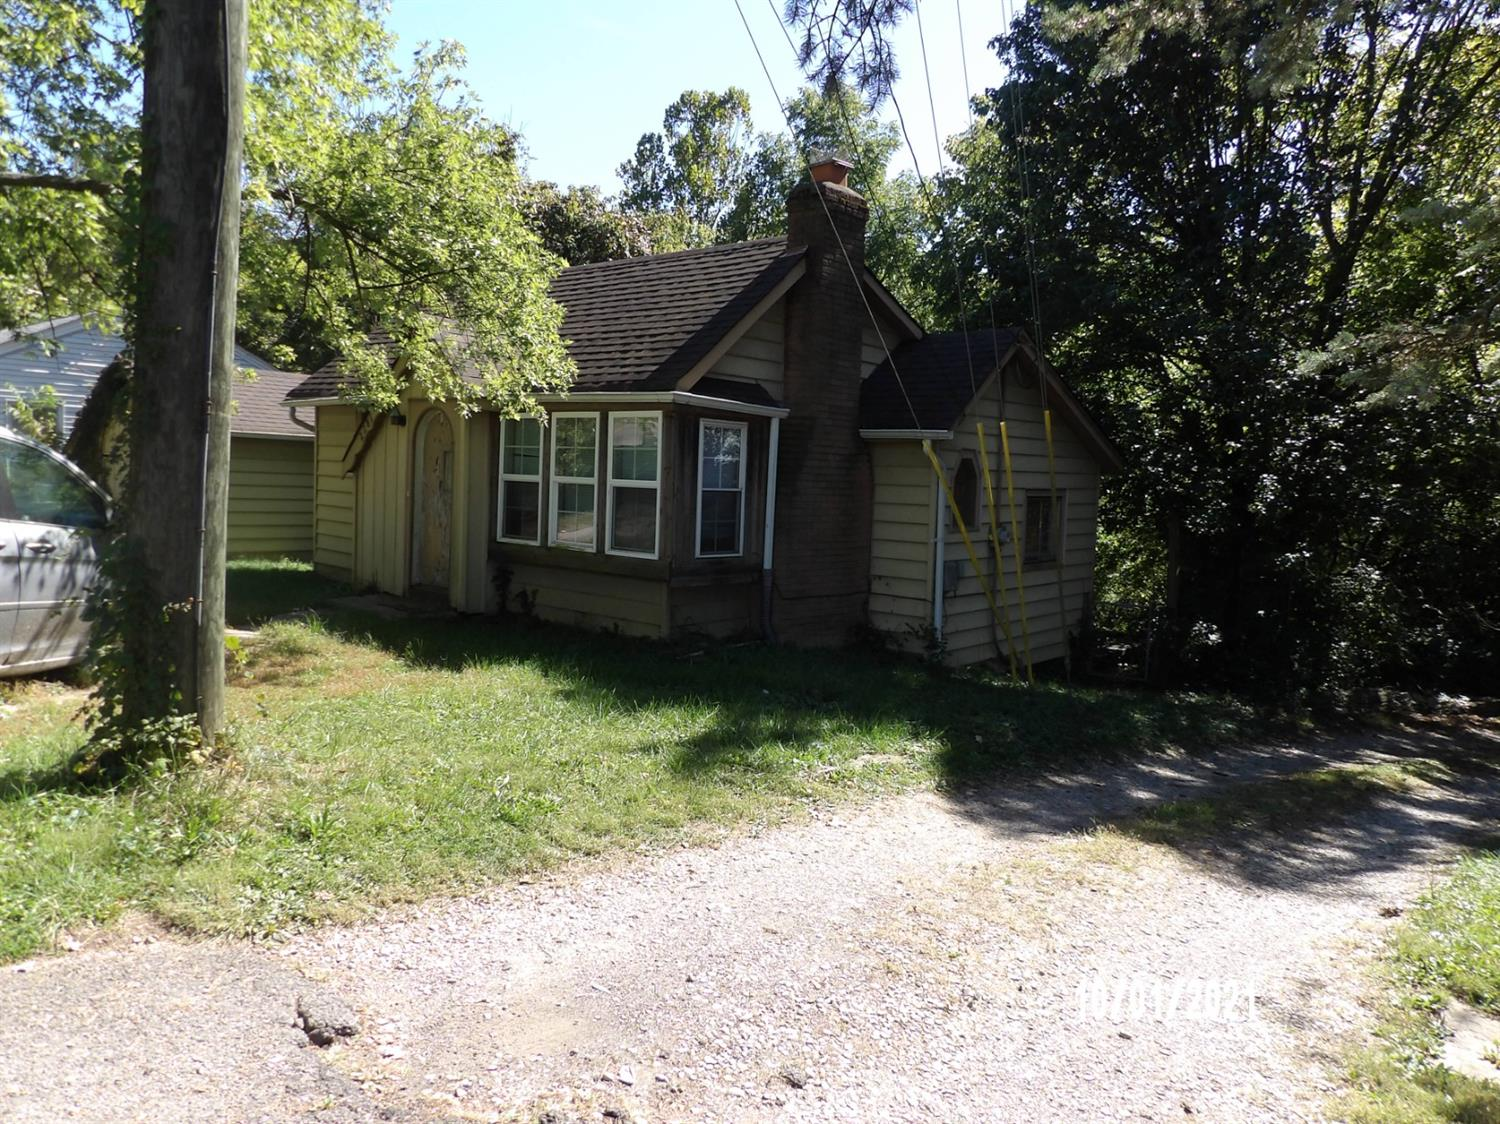 2281 Galbraith Road, Reading, Ohio 45237, 2 Bedrooms Bedrooms, 5 Rooms Rooms,1 BathroomBathrooms,Single Family Residence,For Sale,Galbraith,1717795